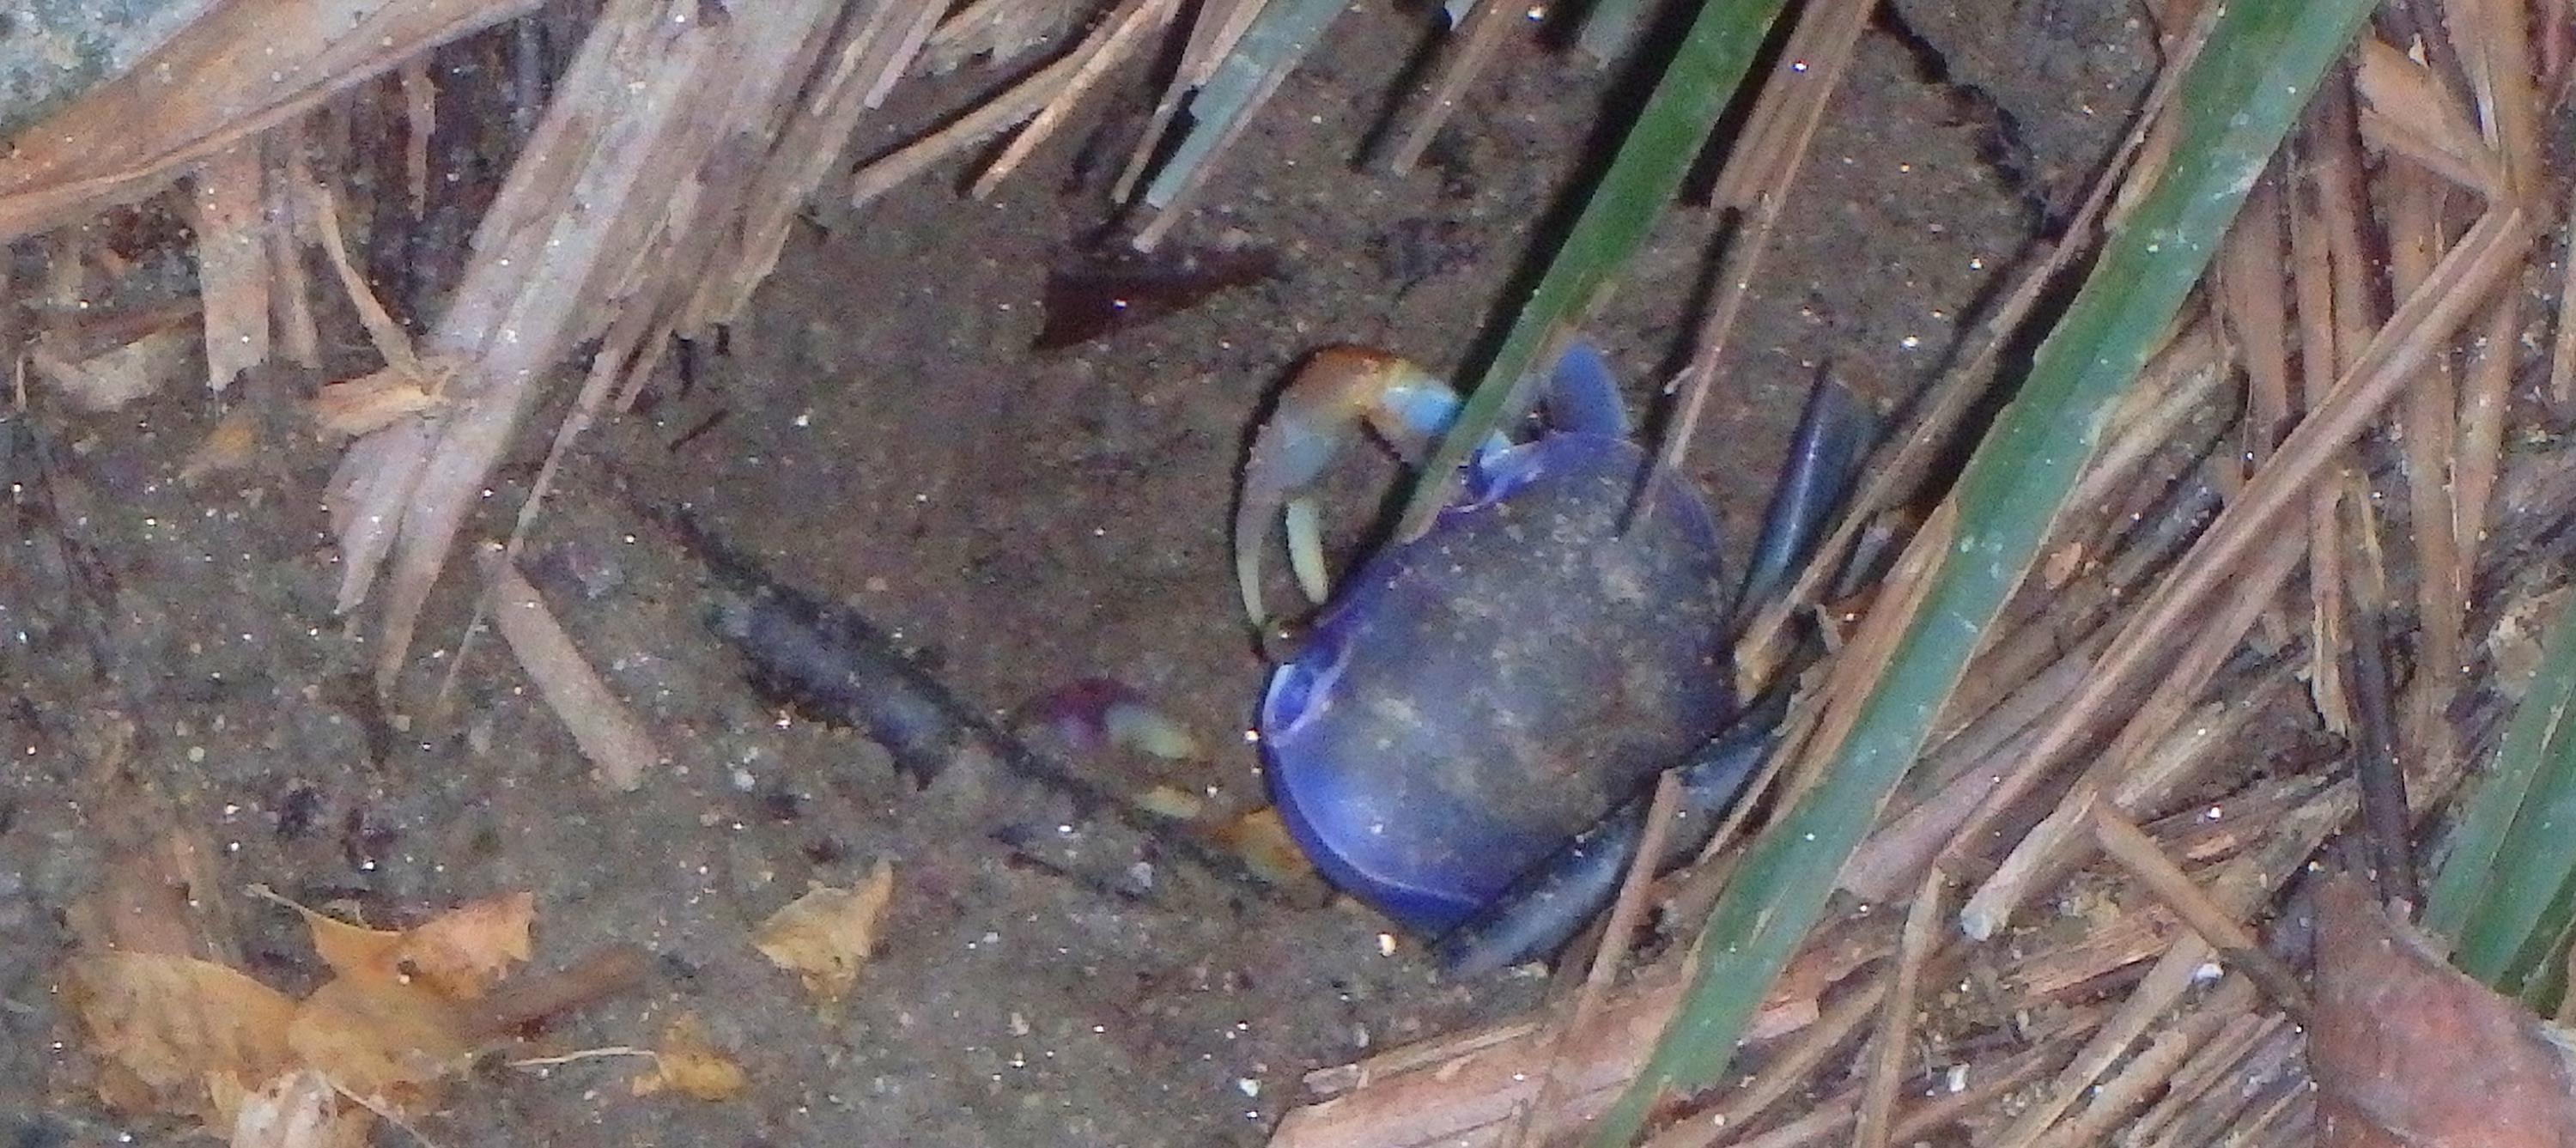 Tayrona national park - crab